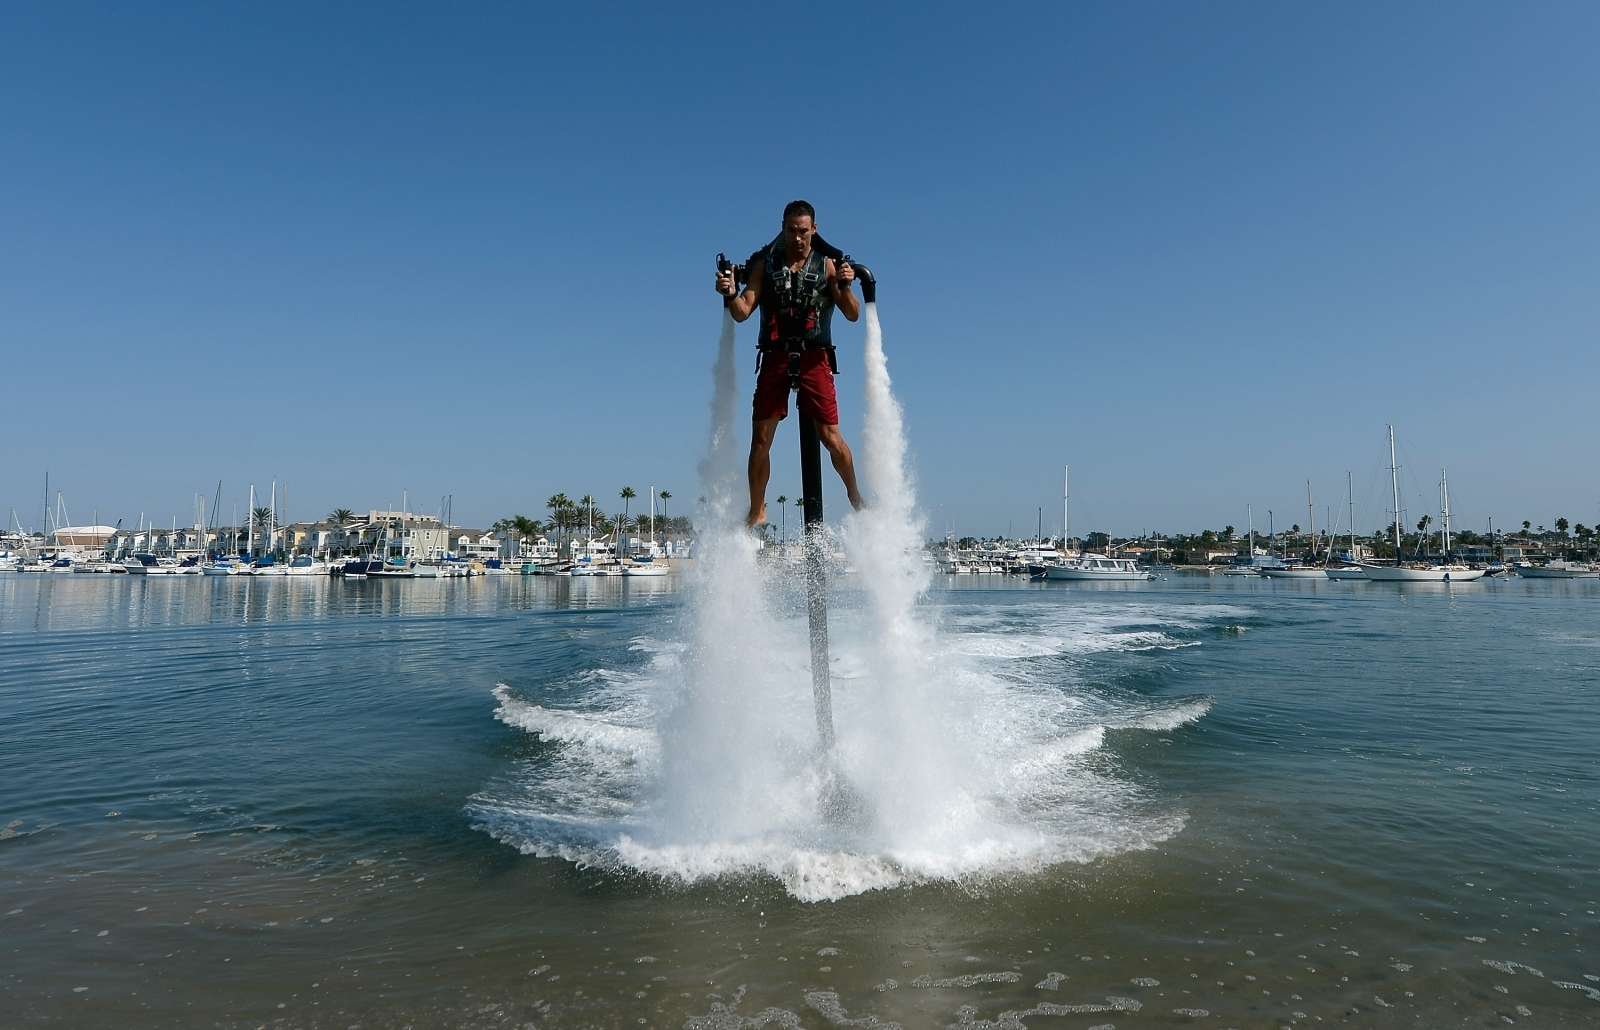 water powered jetpack